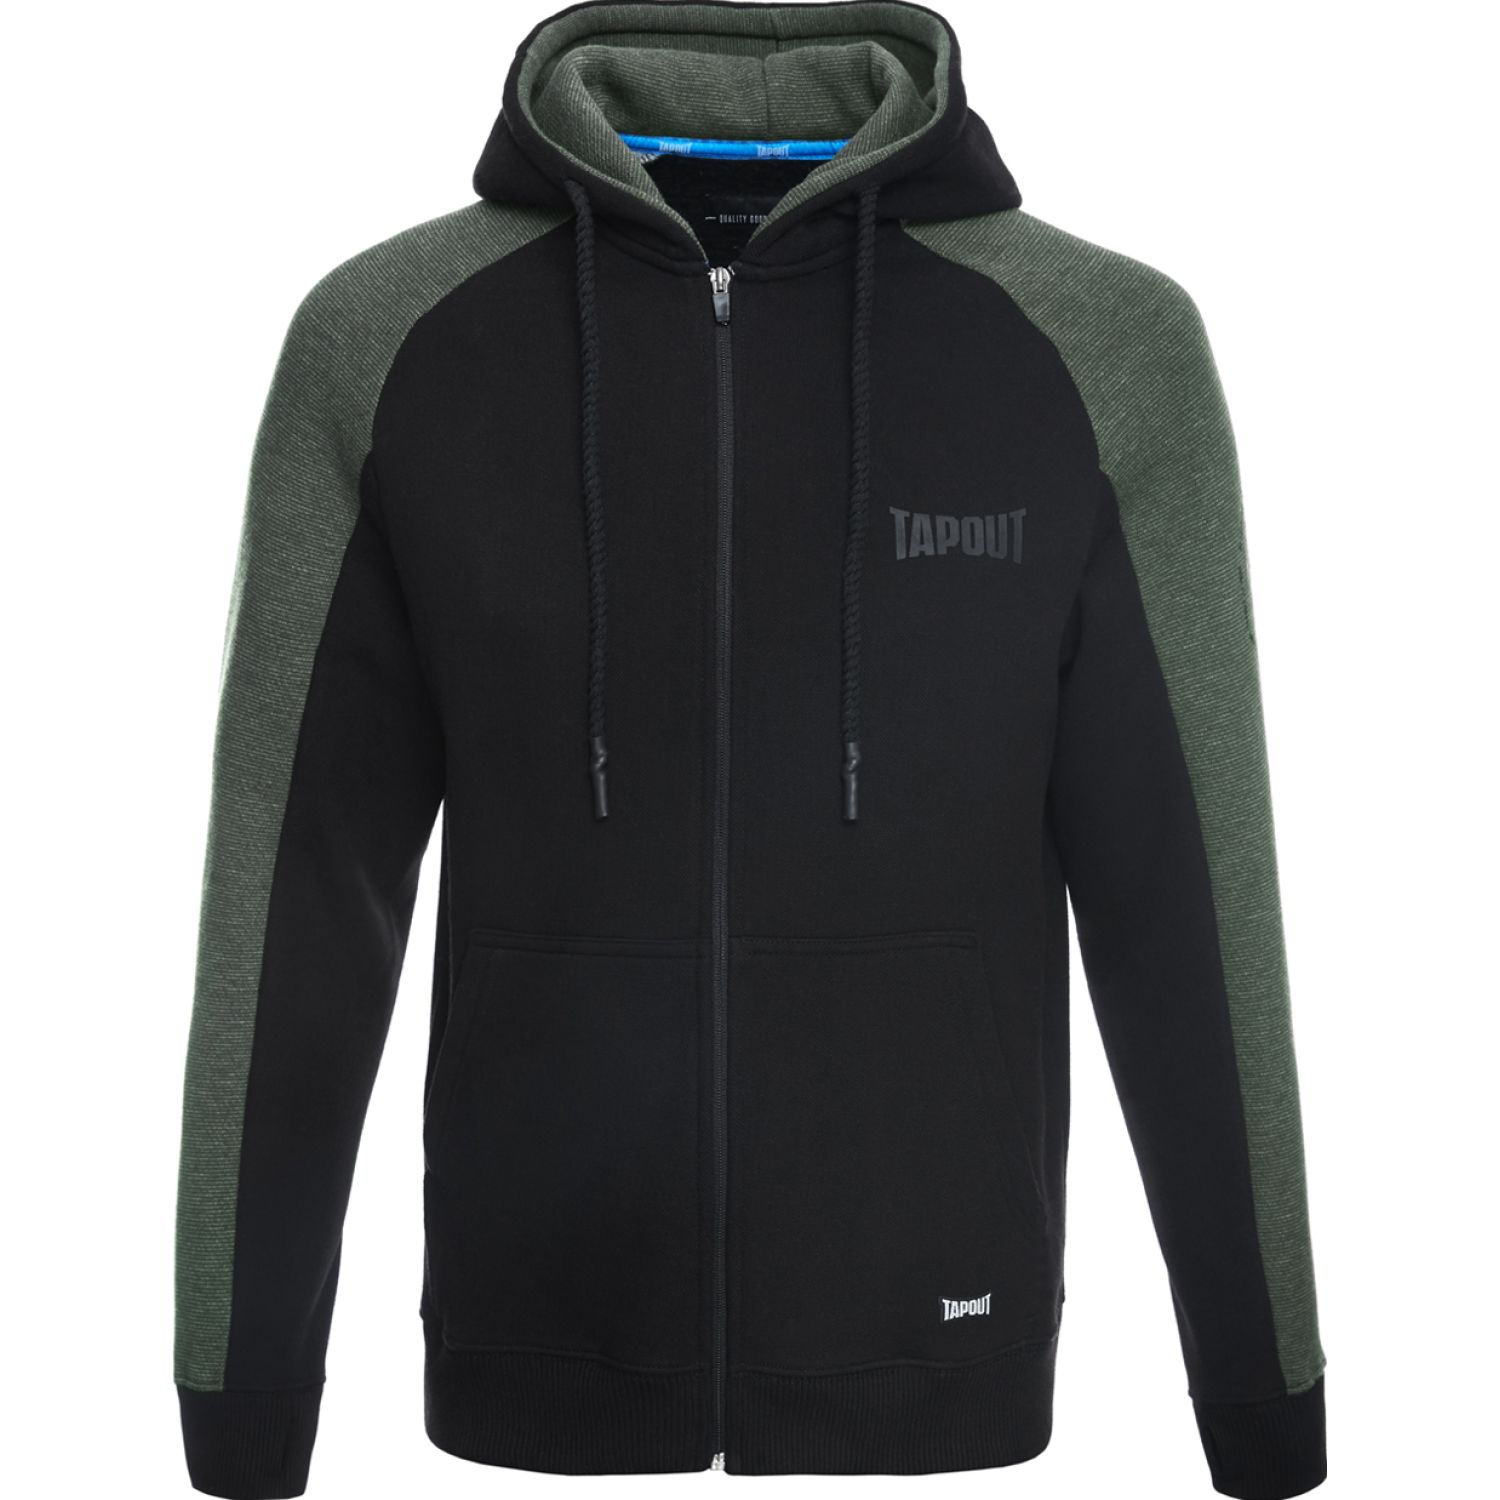 TAPOUT Polera Casual Coke Algodón Negro Hoodies y Sweaters Fashion